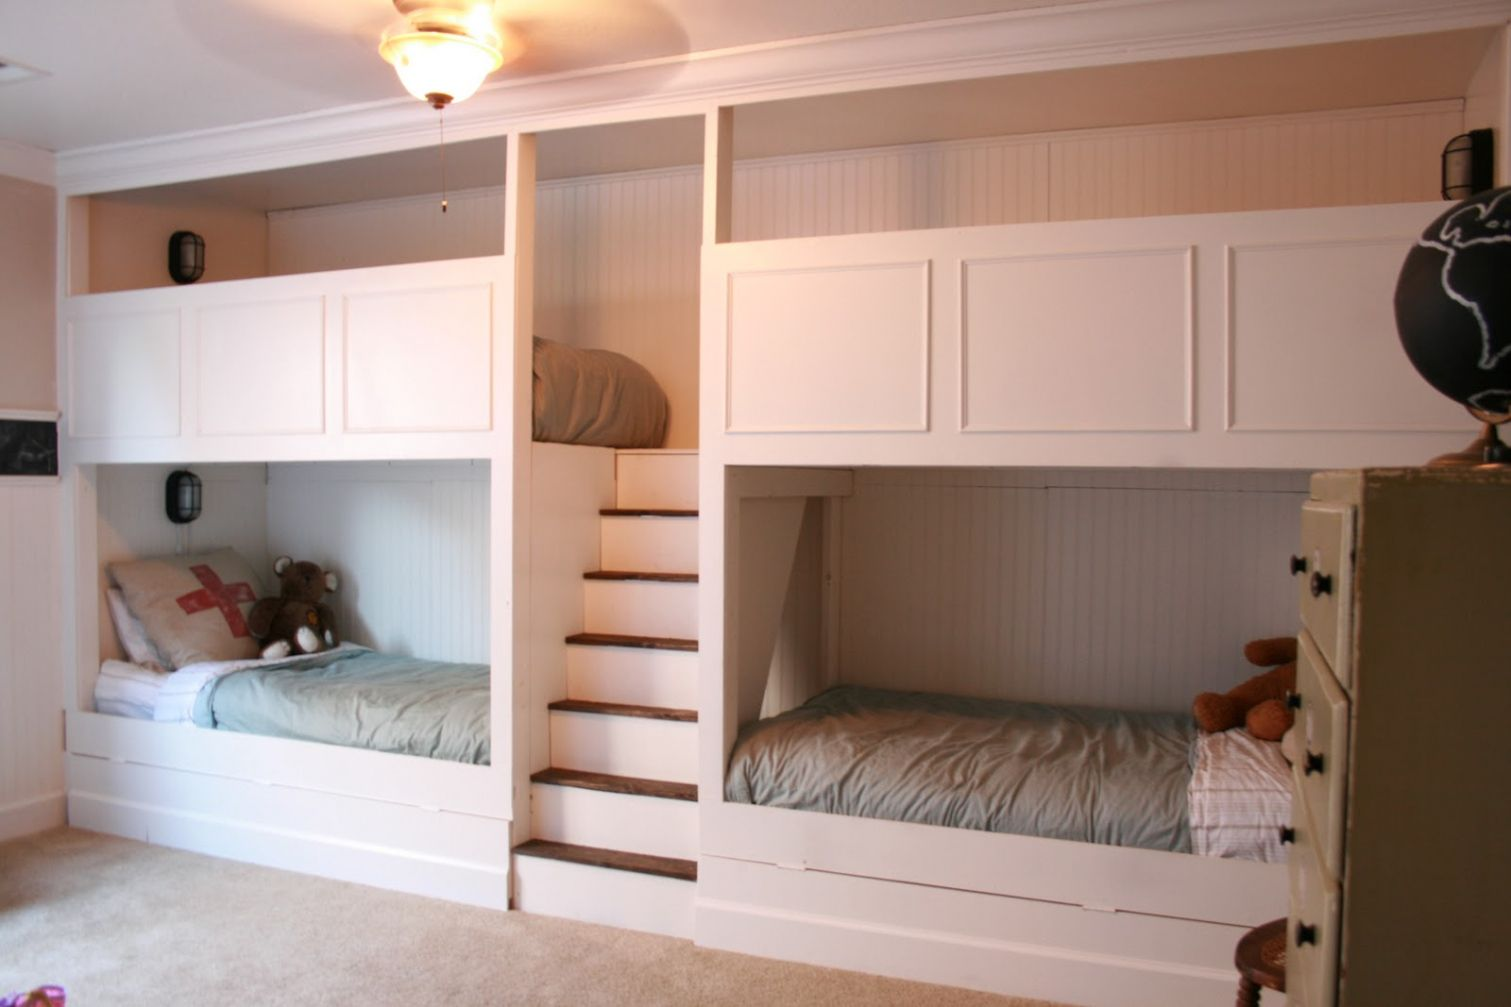 30 4 Person Bunk Bed Mens Bedroom Interior Design Check More At Http Billiepiperfan Com 4 Person Bunk Bed Bunk Beds Built In Diy Bunk Bed Bunk Bed Designs